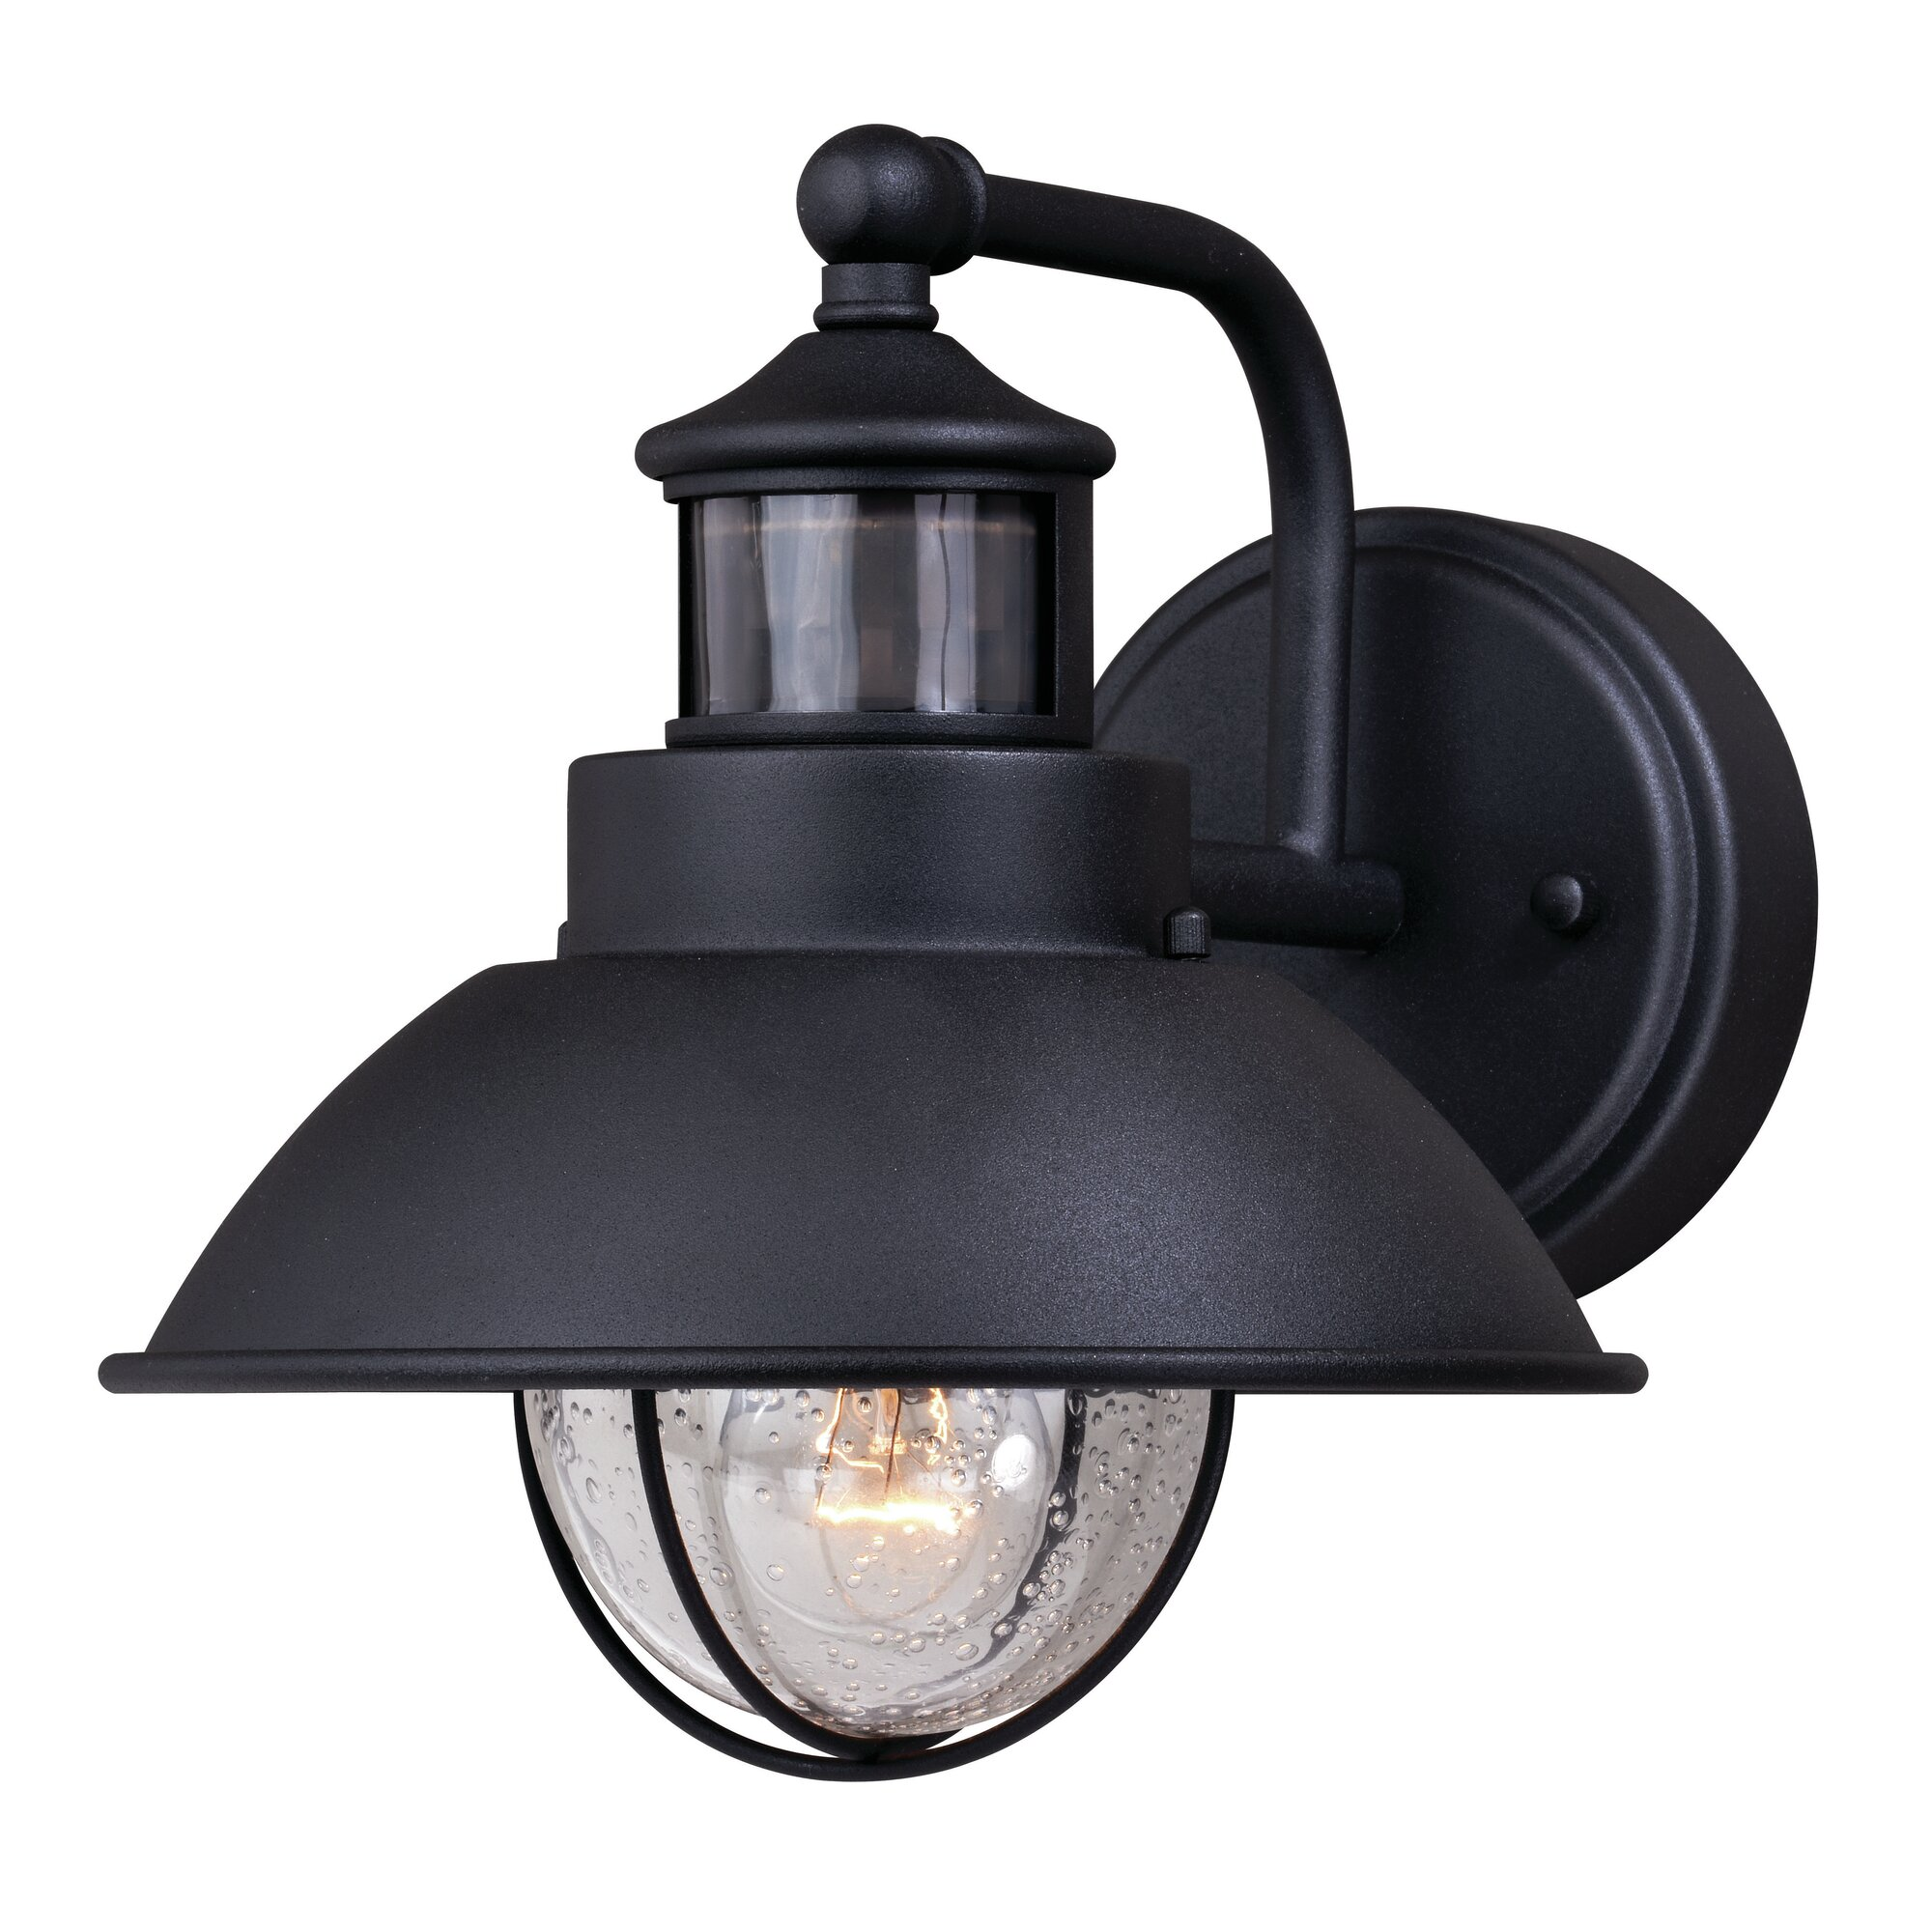 Vaxcel Harwich Dualux® 1-Light Outdoor Barn Light